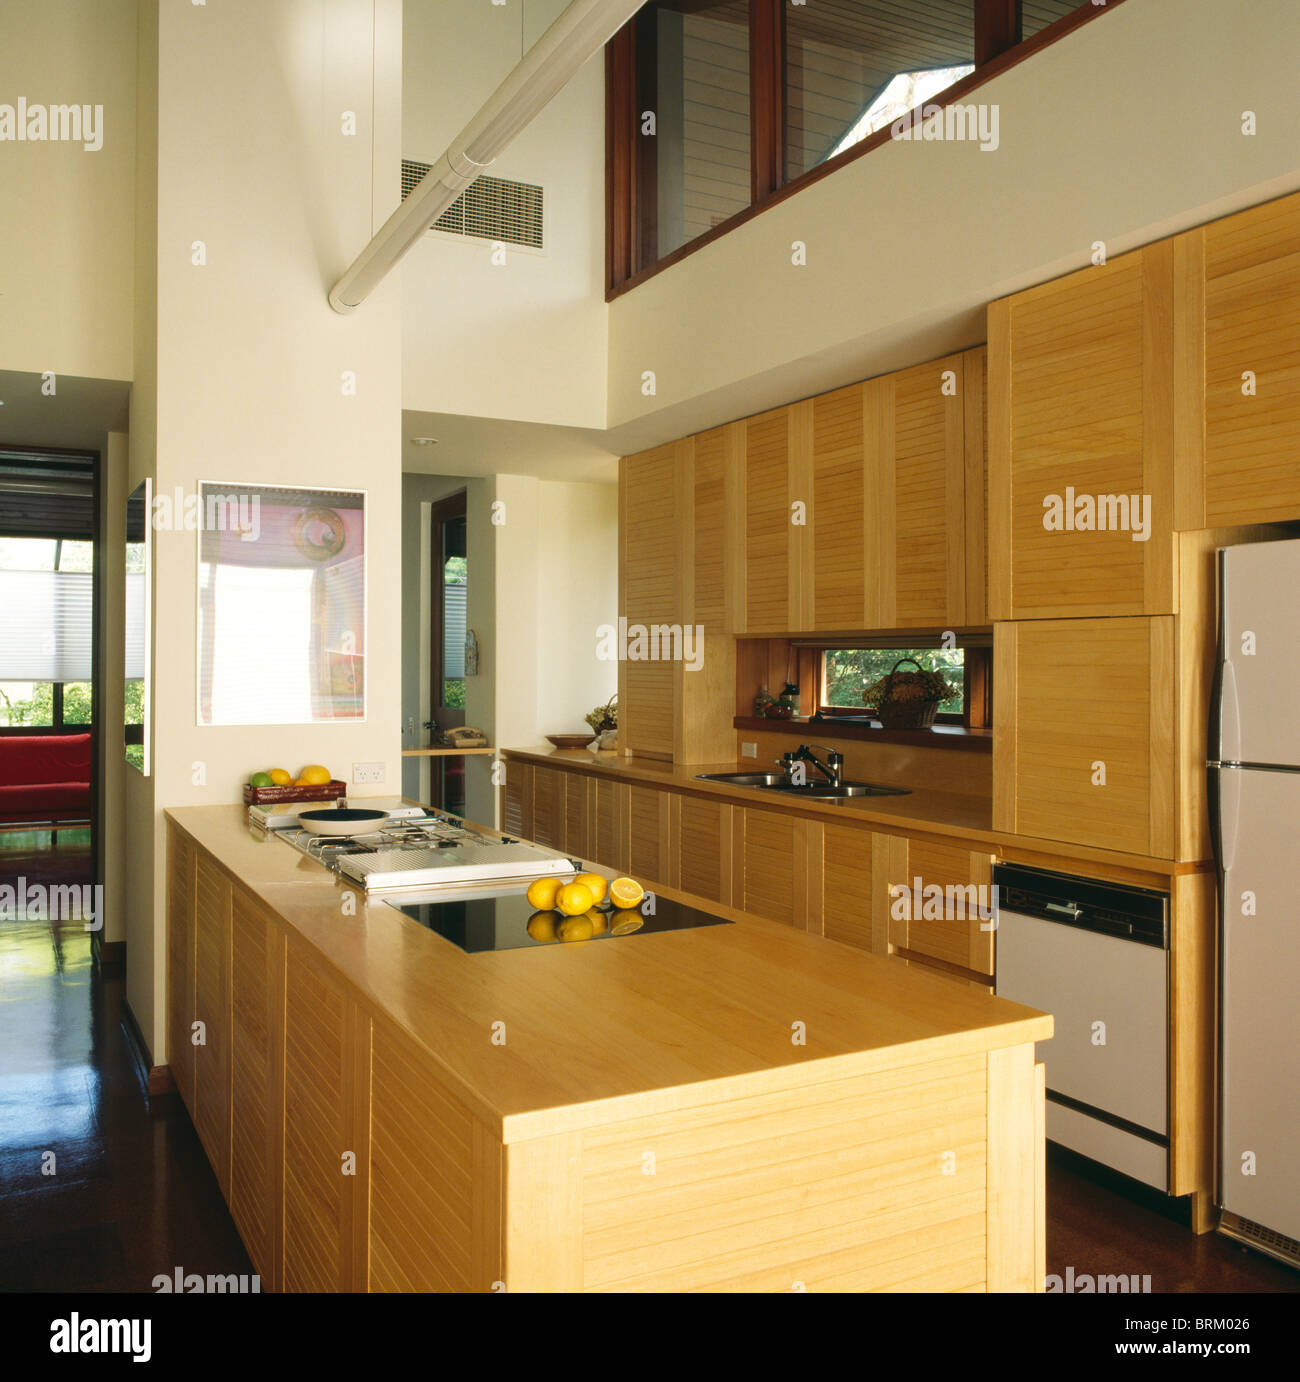 Jjo Urban Kitchen Modern Fitted Kitchens: Peninsular Unit With Fitted Hob In Modern Double-height